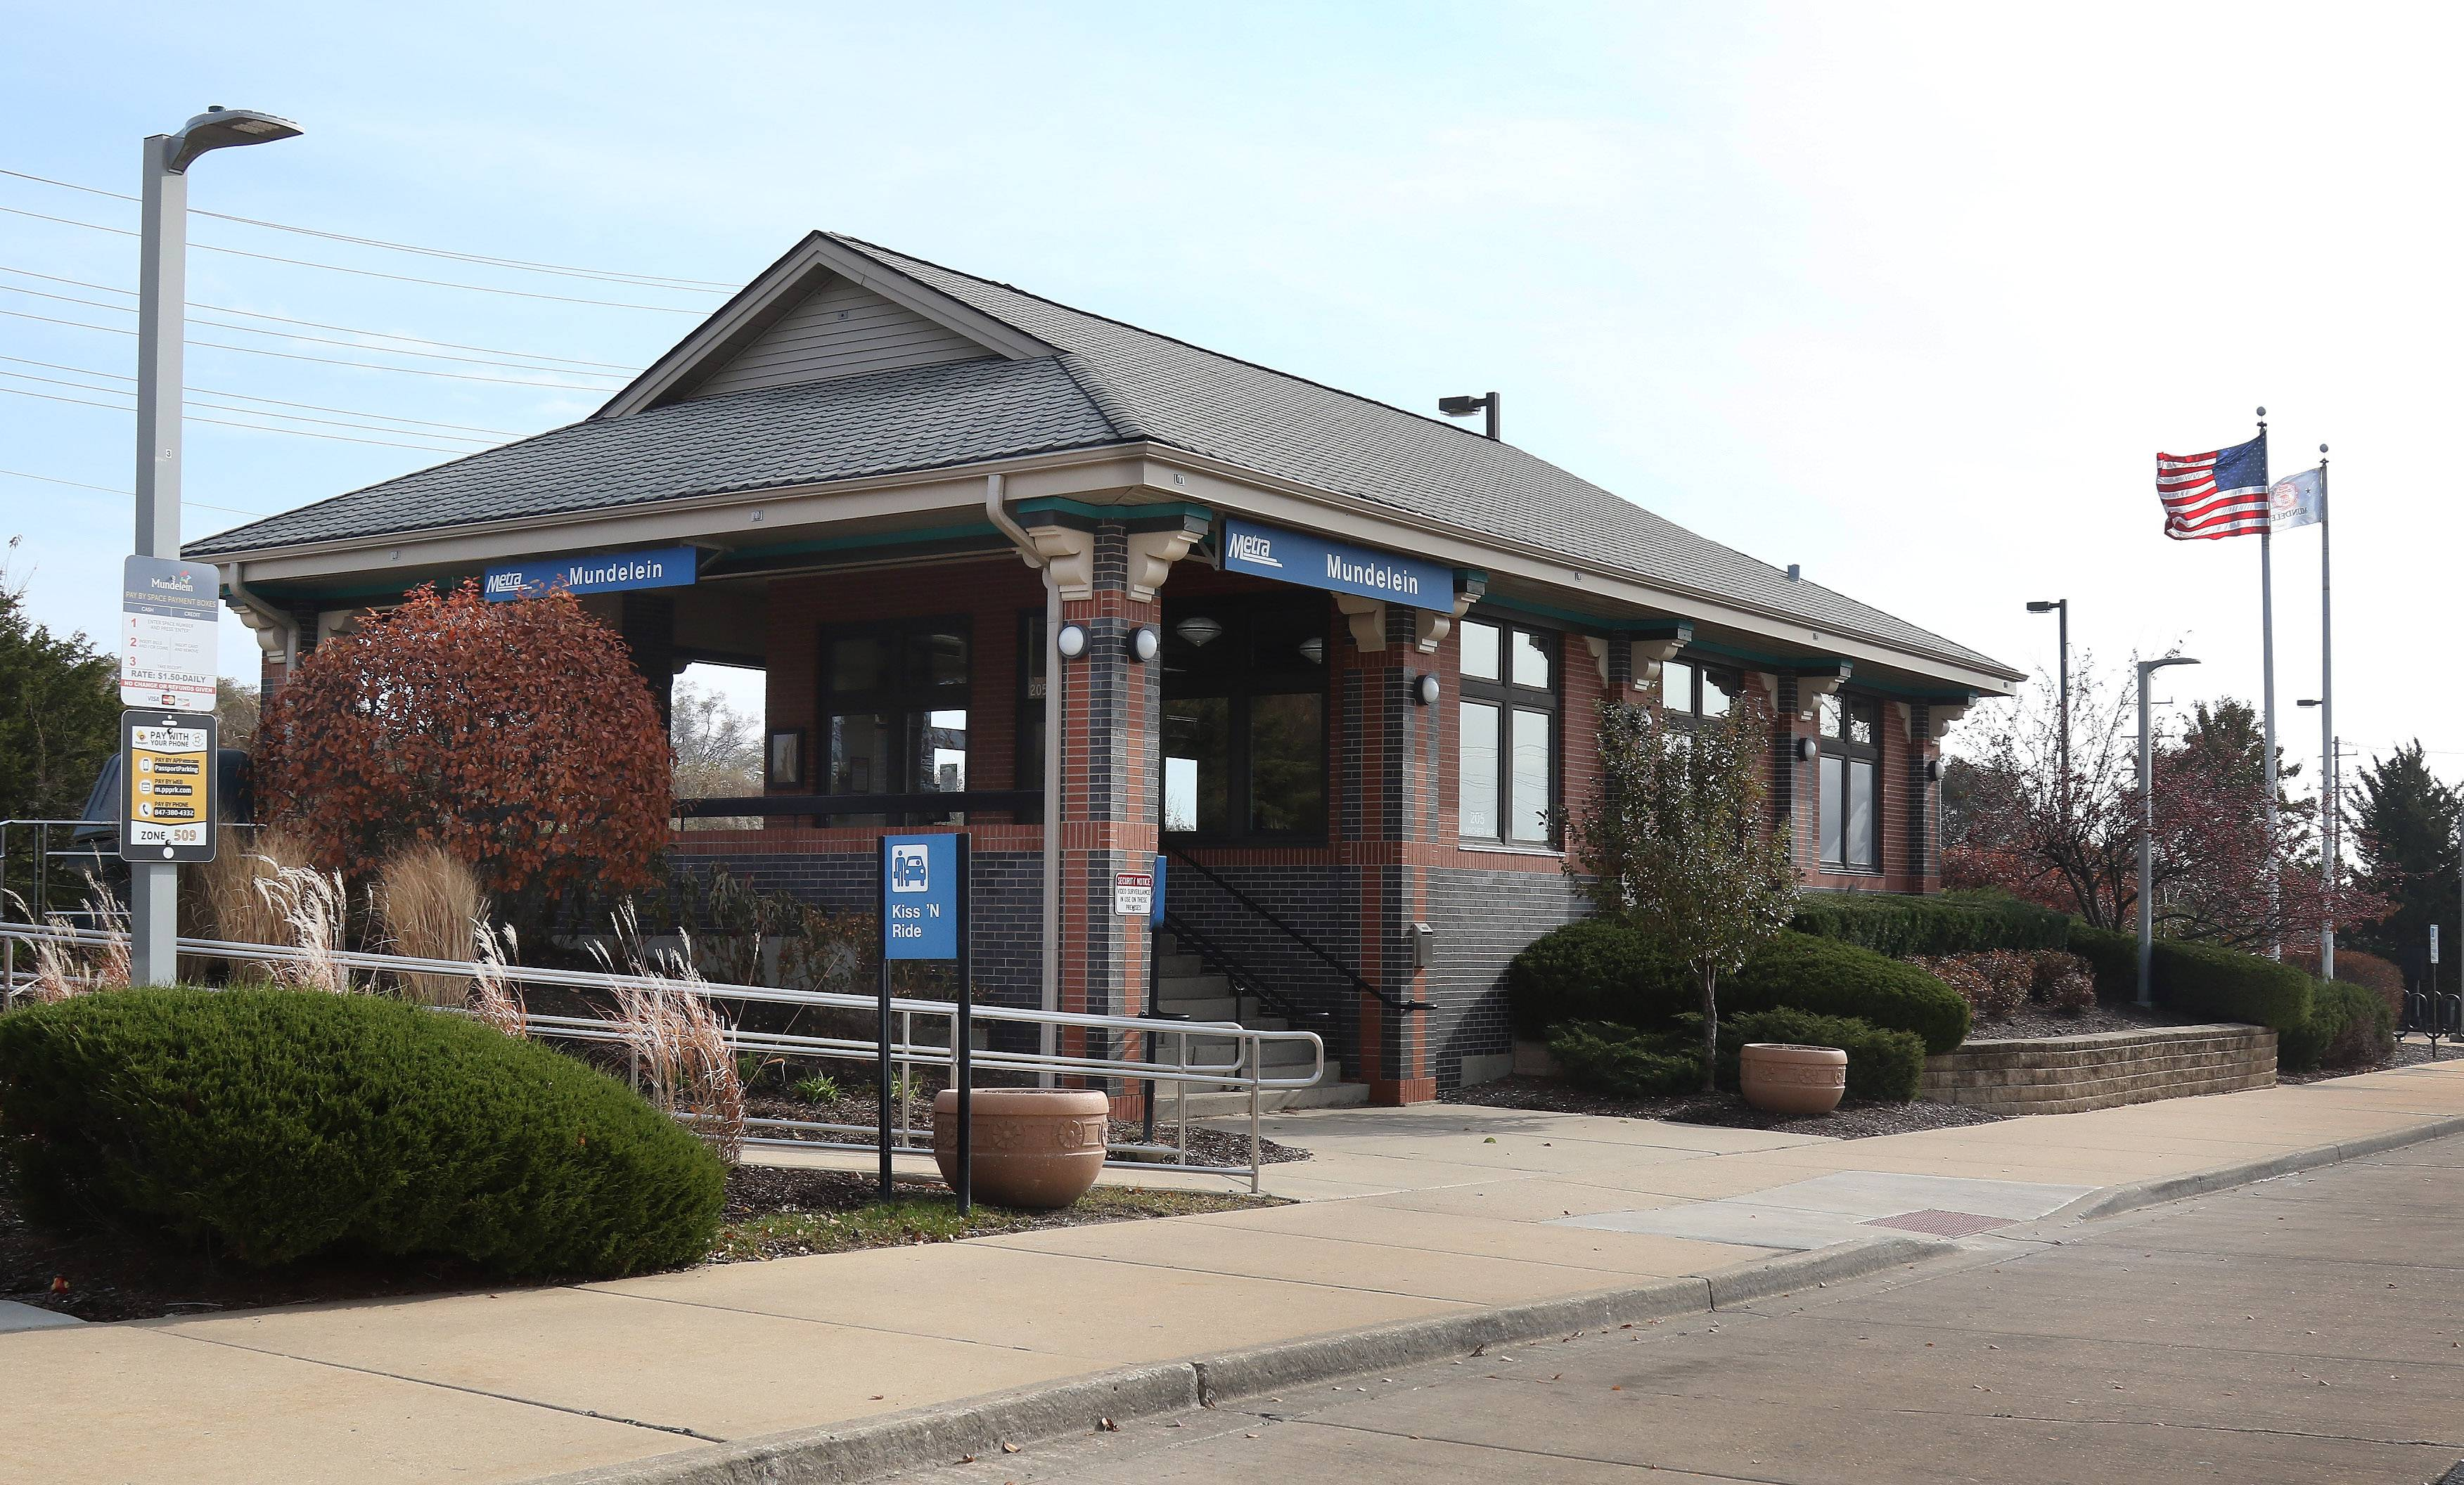 Mundelein's economic development commission believes more Metra service to the village could boost its downtown, but the commuter rail agency is instead suggesting service cuts.